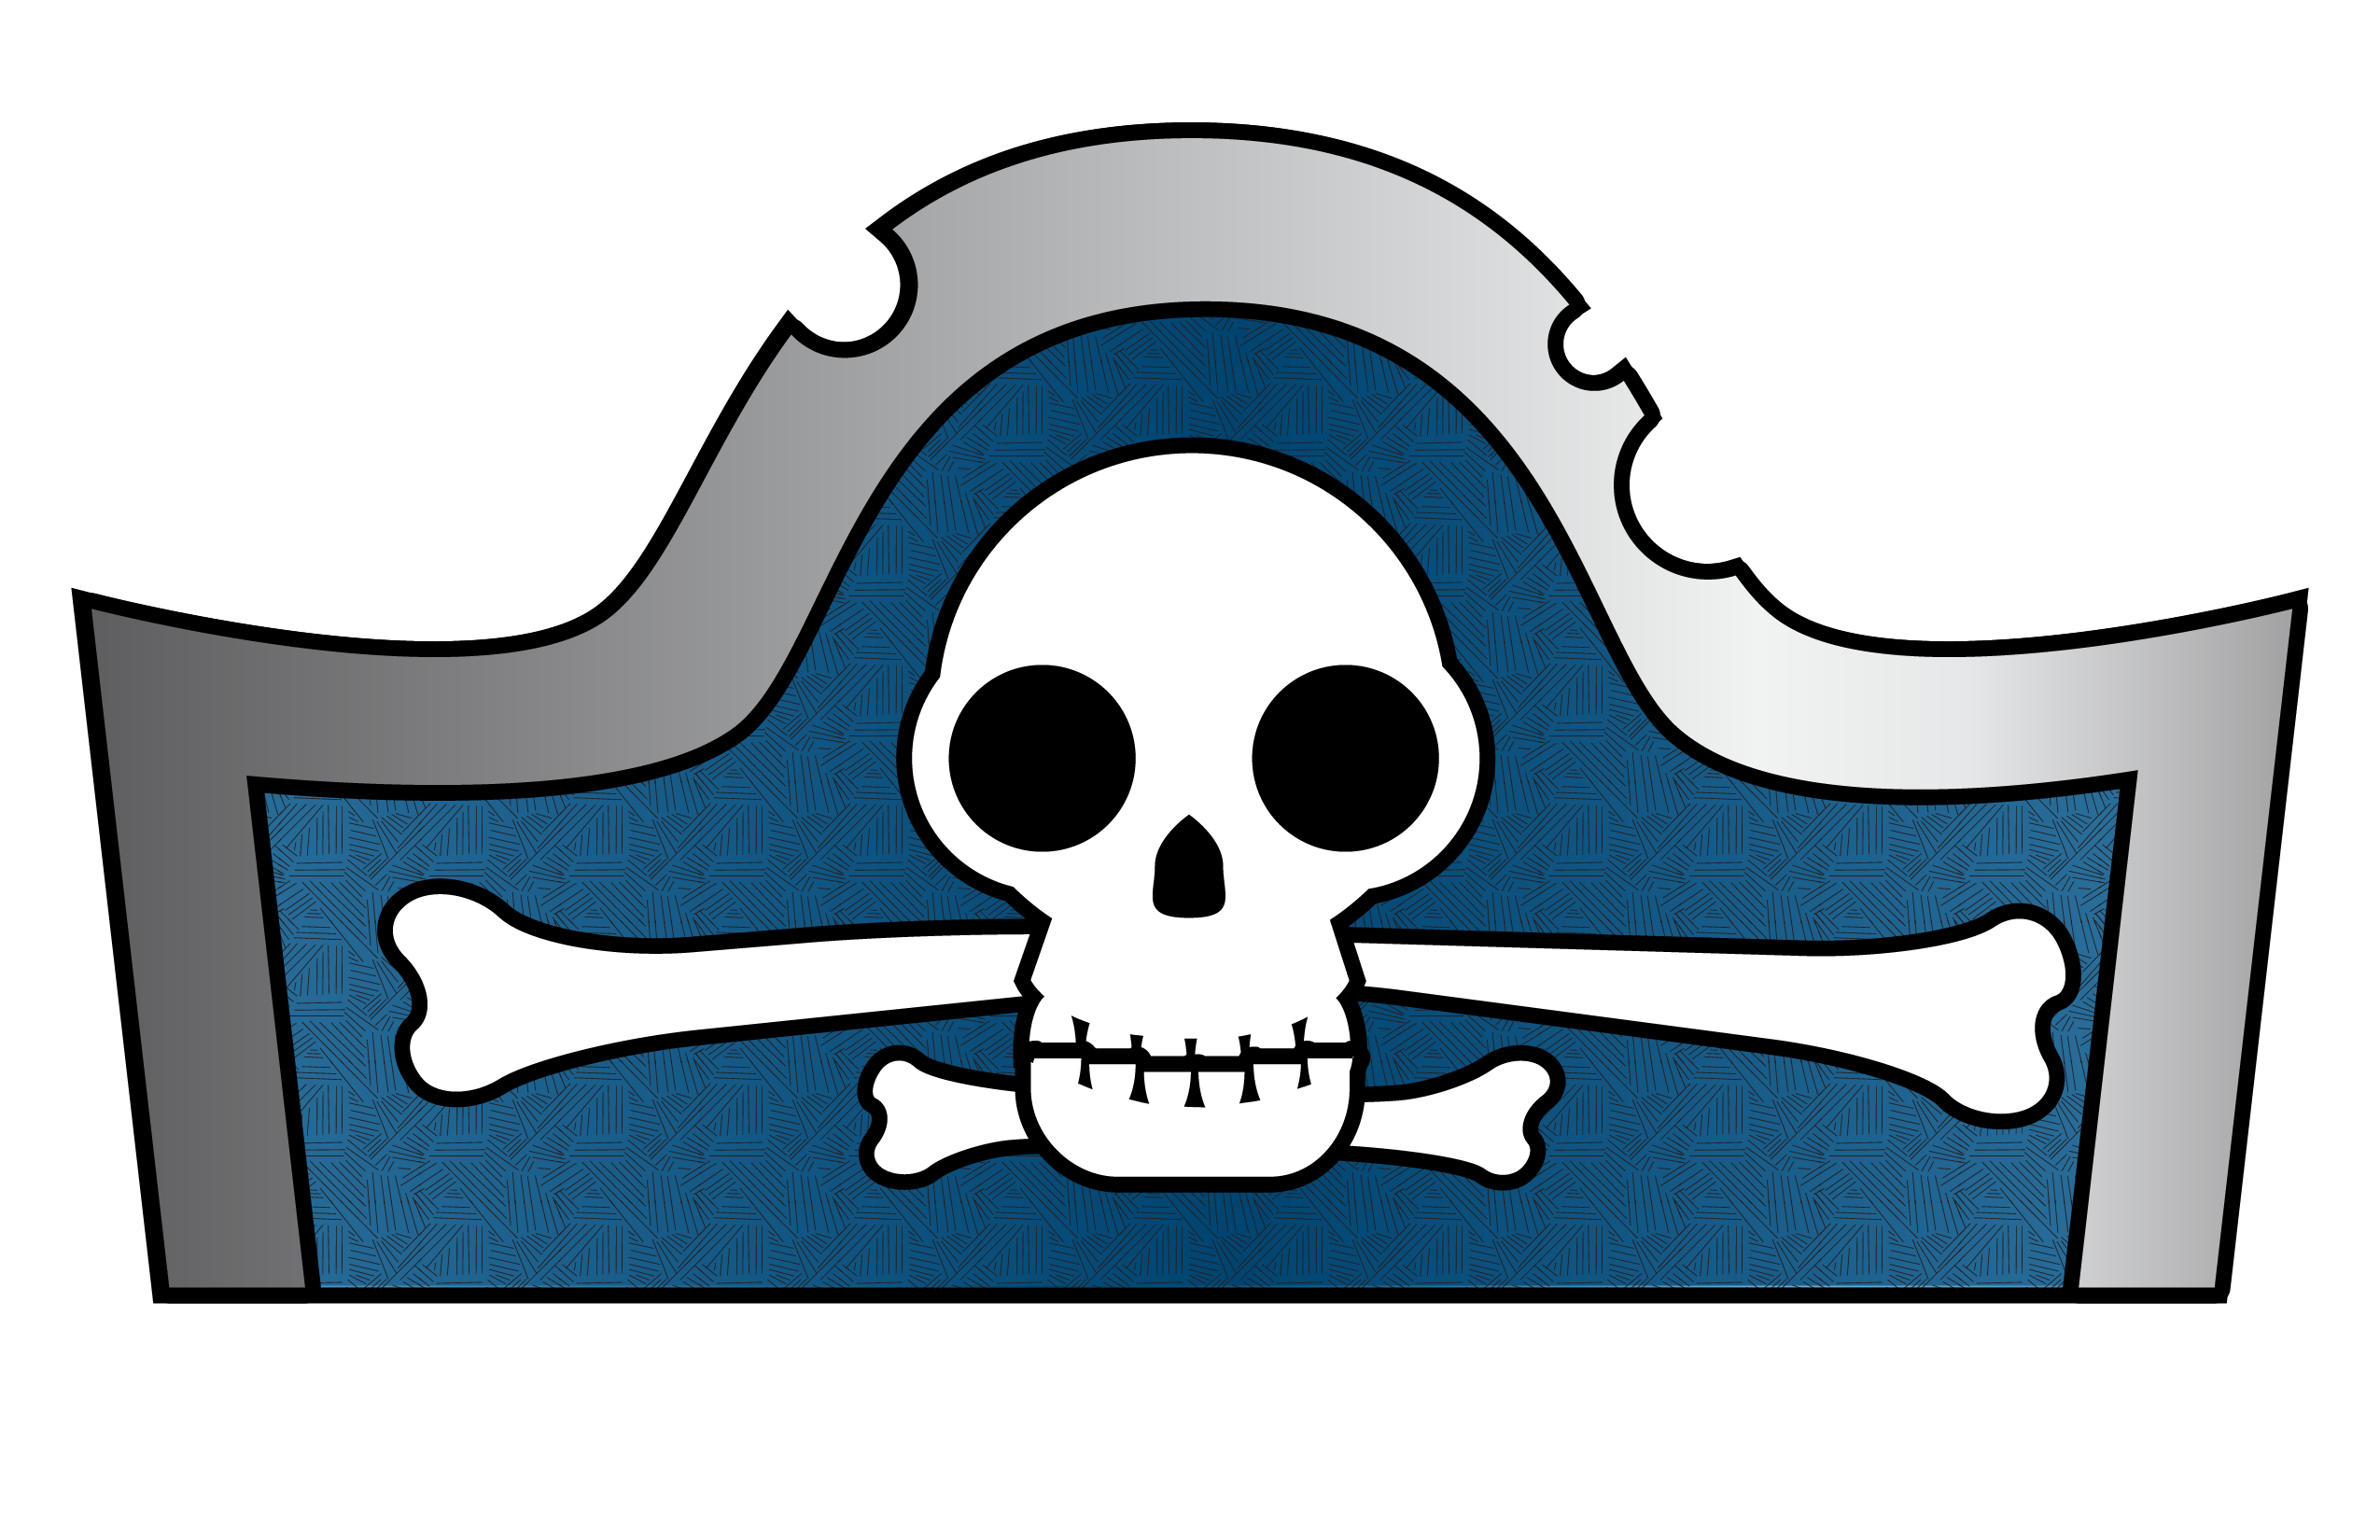 Newspaper clipart vernacular. Pirate hat template for